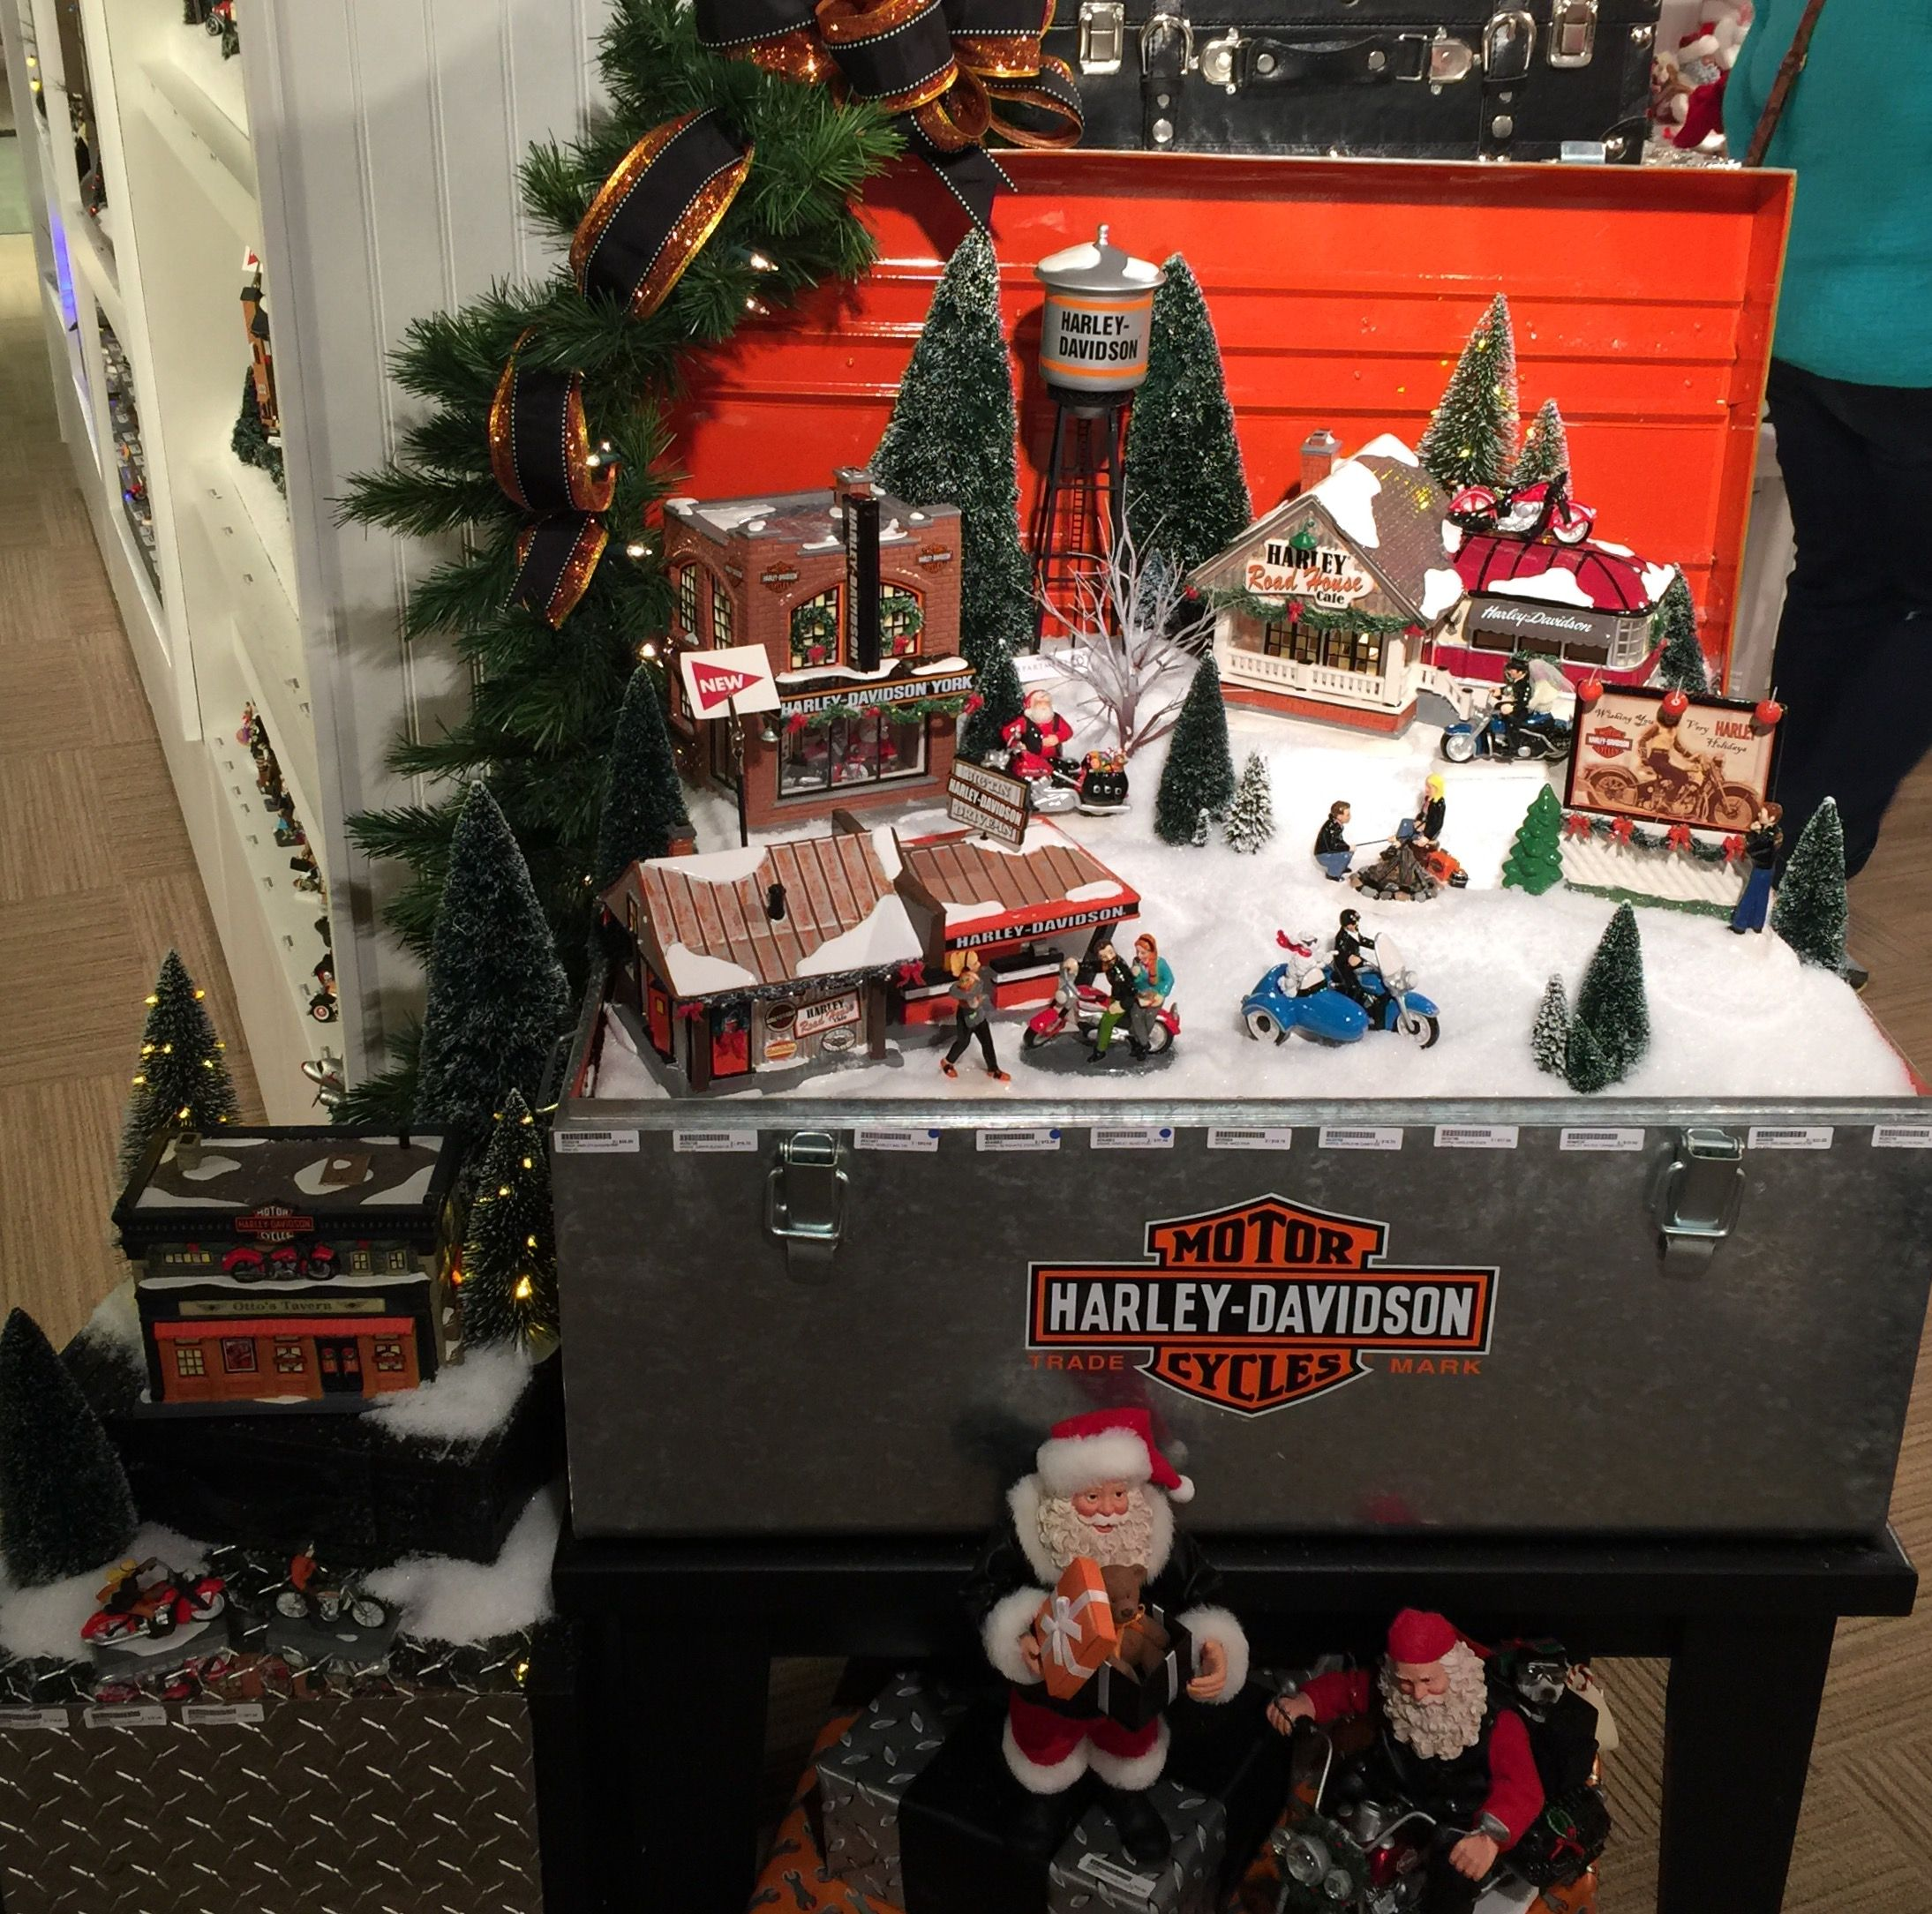 Our Customers Love Our D56 Harley Davidson Village Display